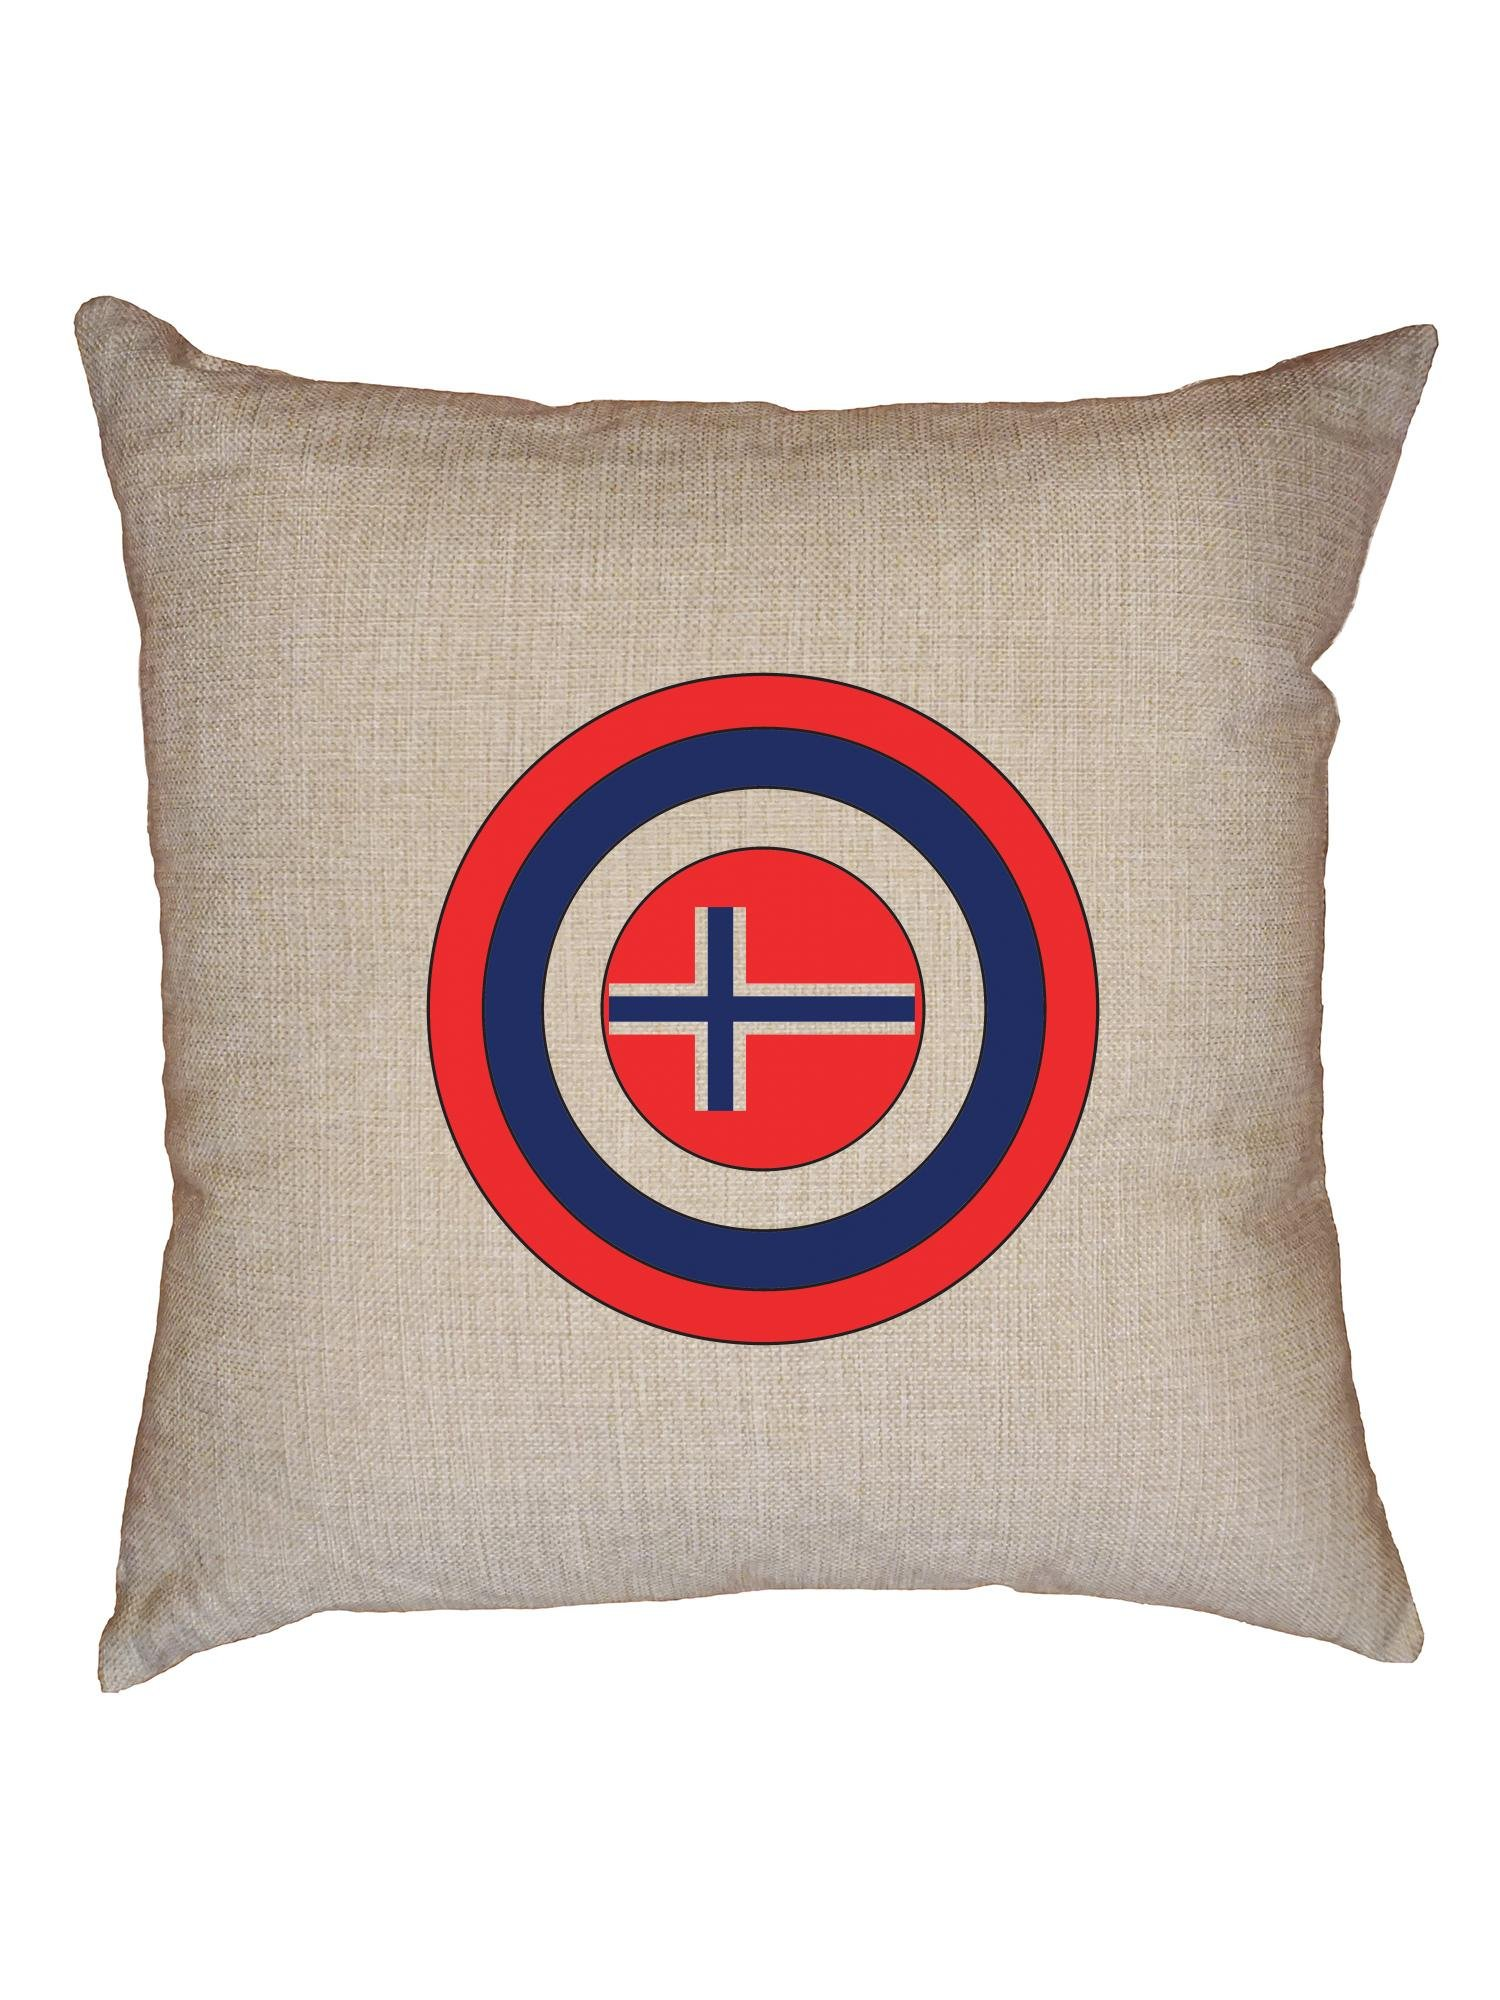 Hollywood Thread Cool Geeky Captain Norway Shield in America Decorative Linen Throw Cushion Pillow Case with Insert